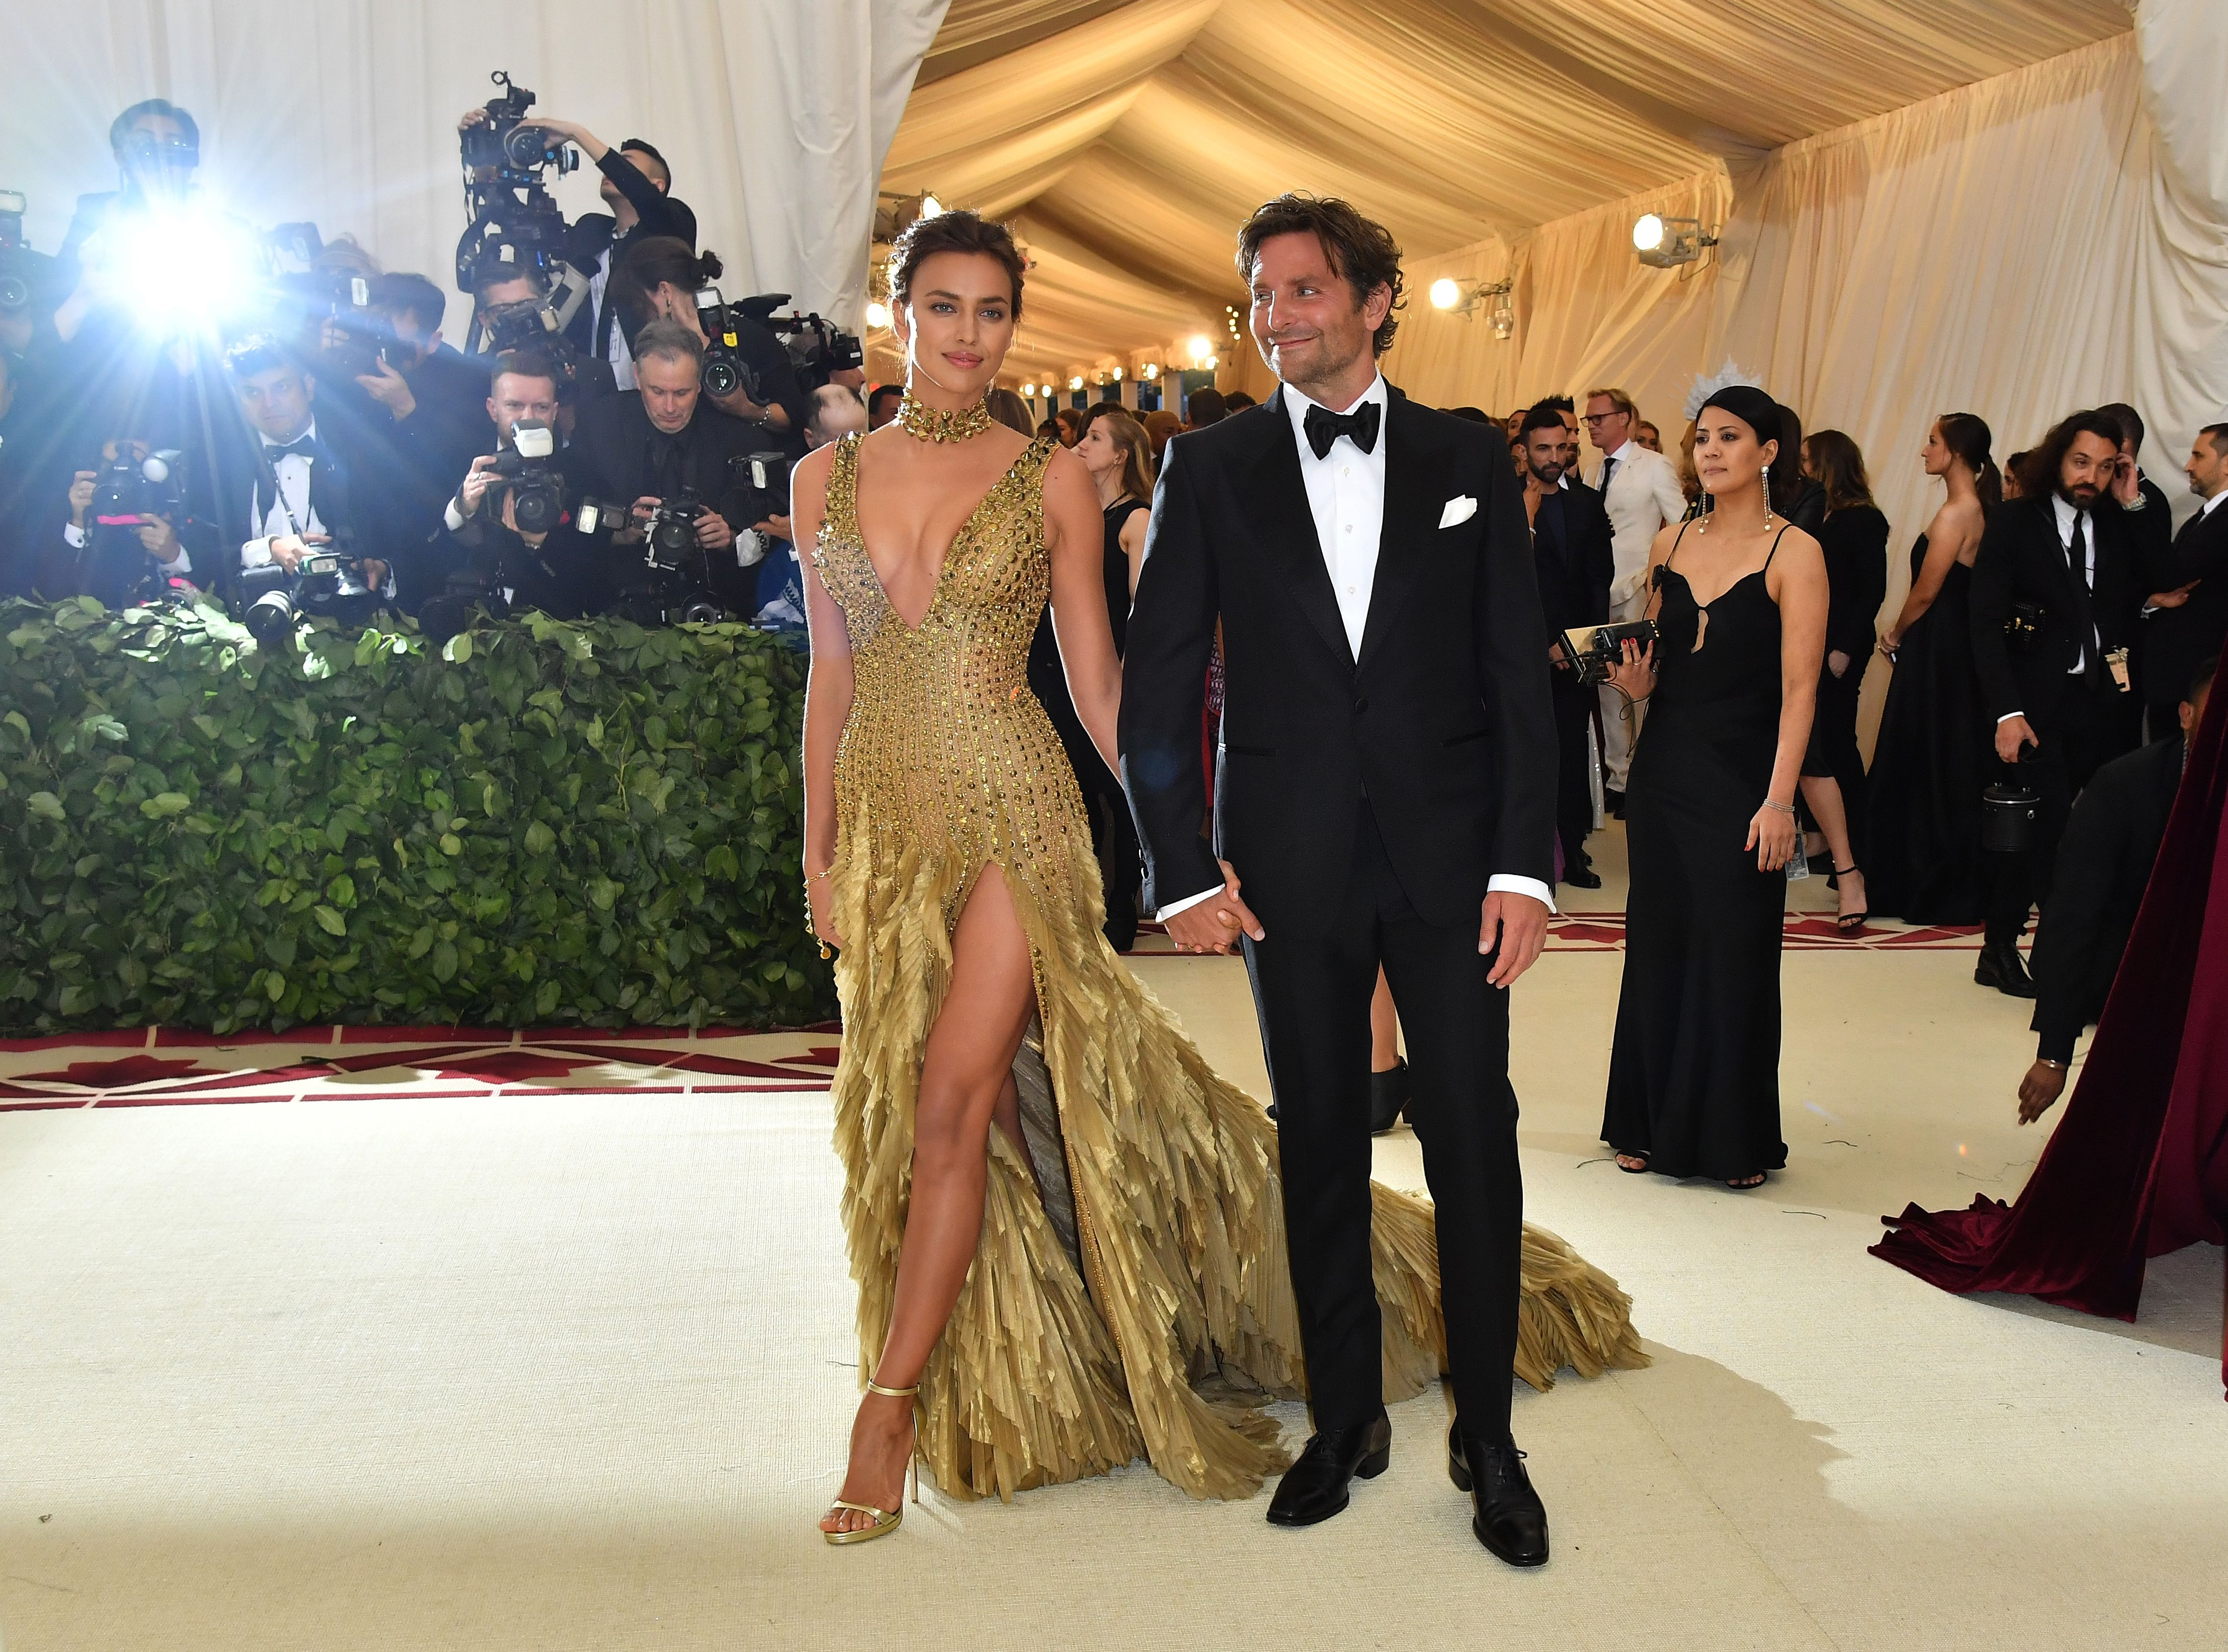 Irina Shayk and Bradley Cooper arrive for the 2018 Met Gala on May 7, 2018, at the Metropolitan Museum of Art in New York. - The Gala raises money for the Metropolitan Museum of Arts Costume Institute. The Gala's 2018 theme is Heavenly Bodies: Fashion and the Catholic Imagination. (Photo credit ANGELA WEISS/AFP/Getty Images)